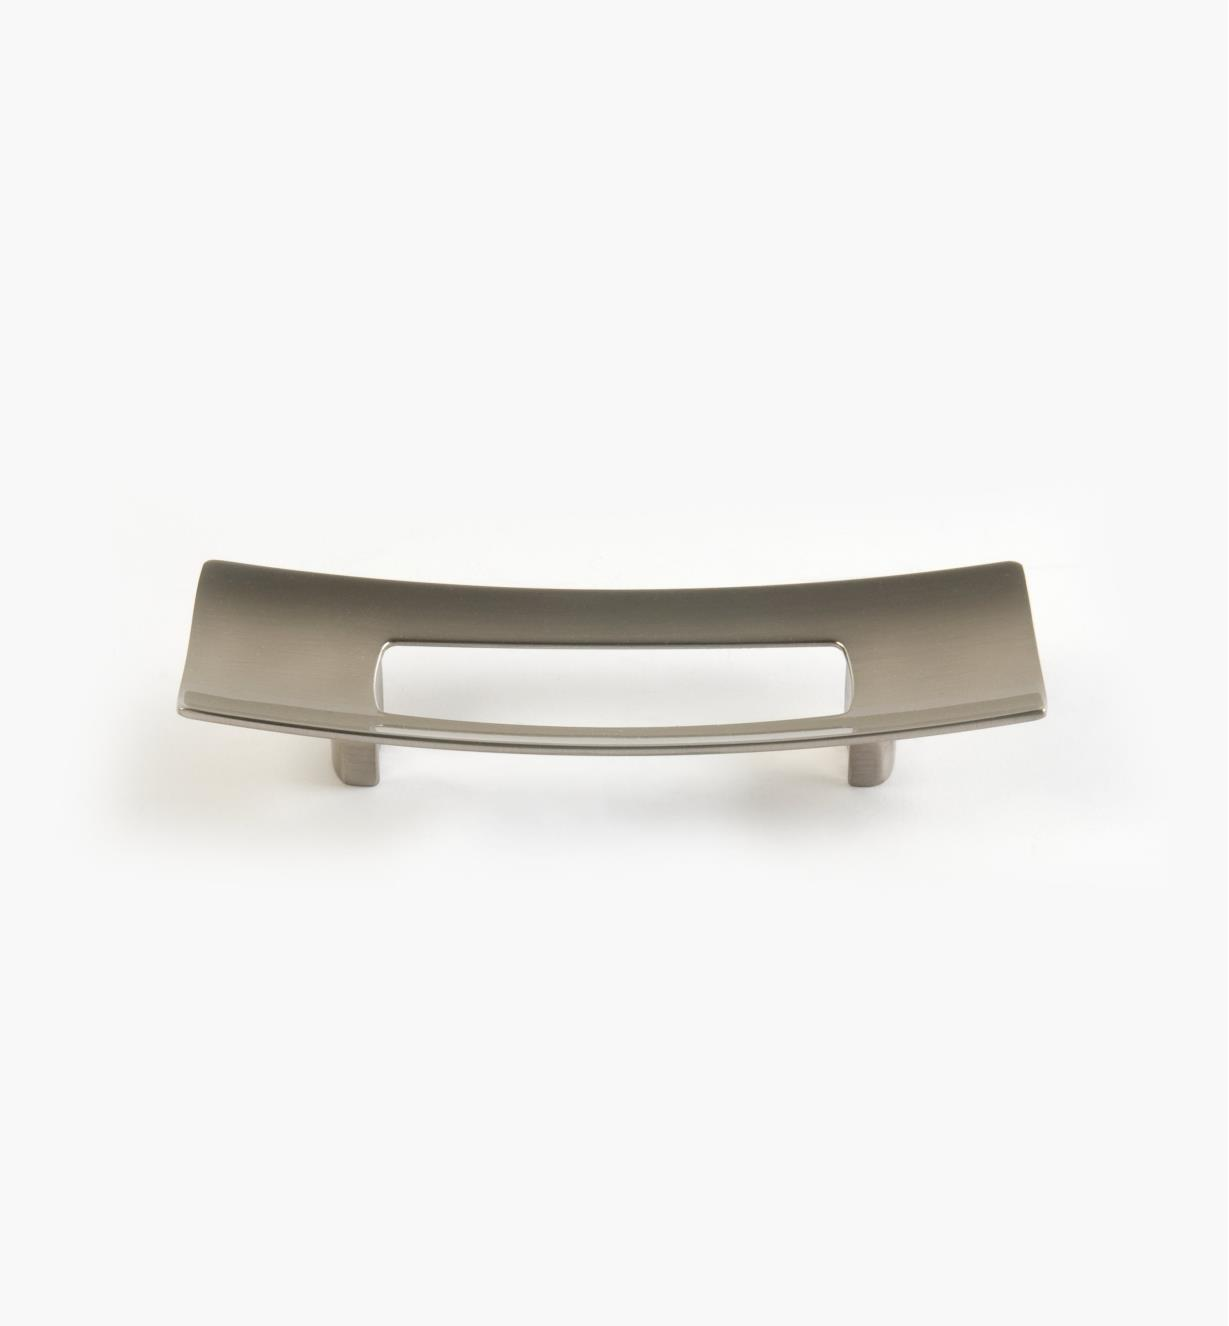 01G1642 - 96mm x 30mm Brushed Nickel Rect. Ventana Pull